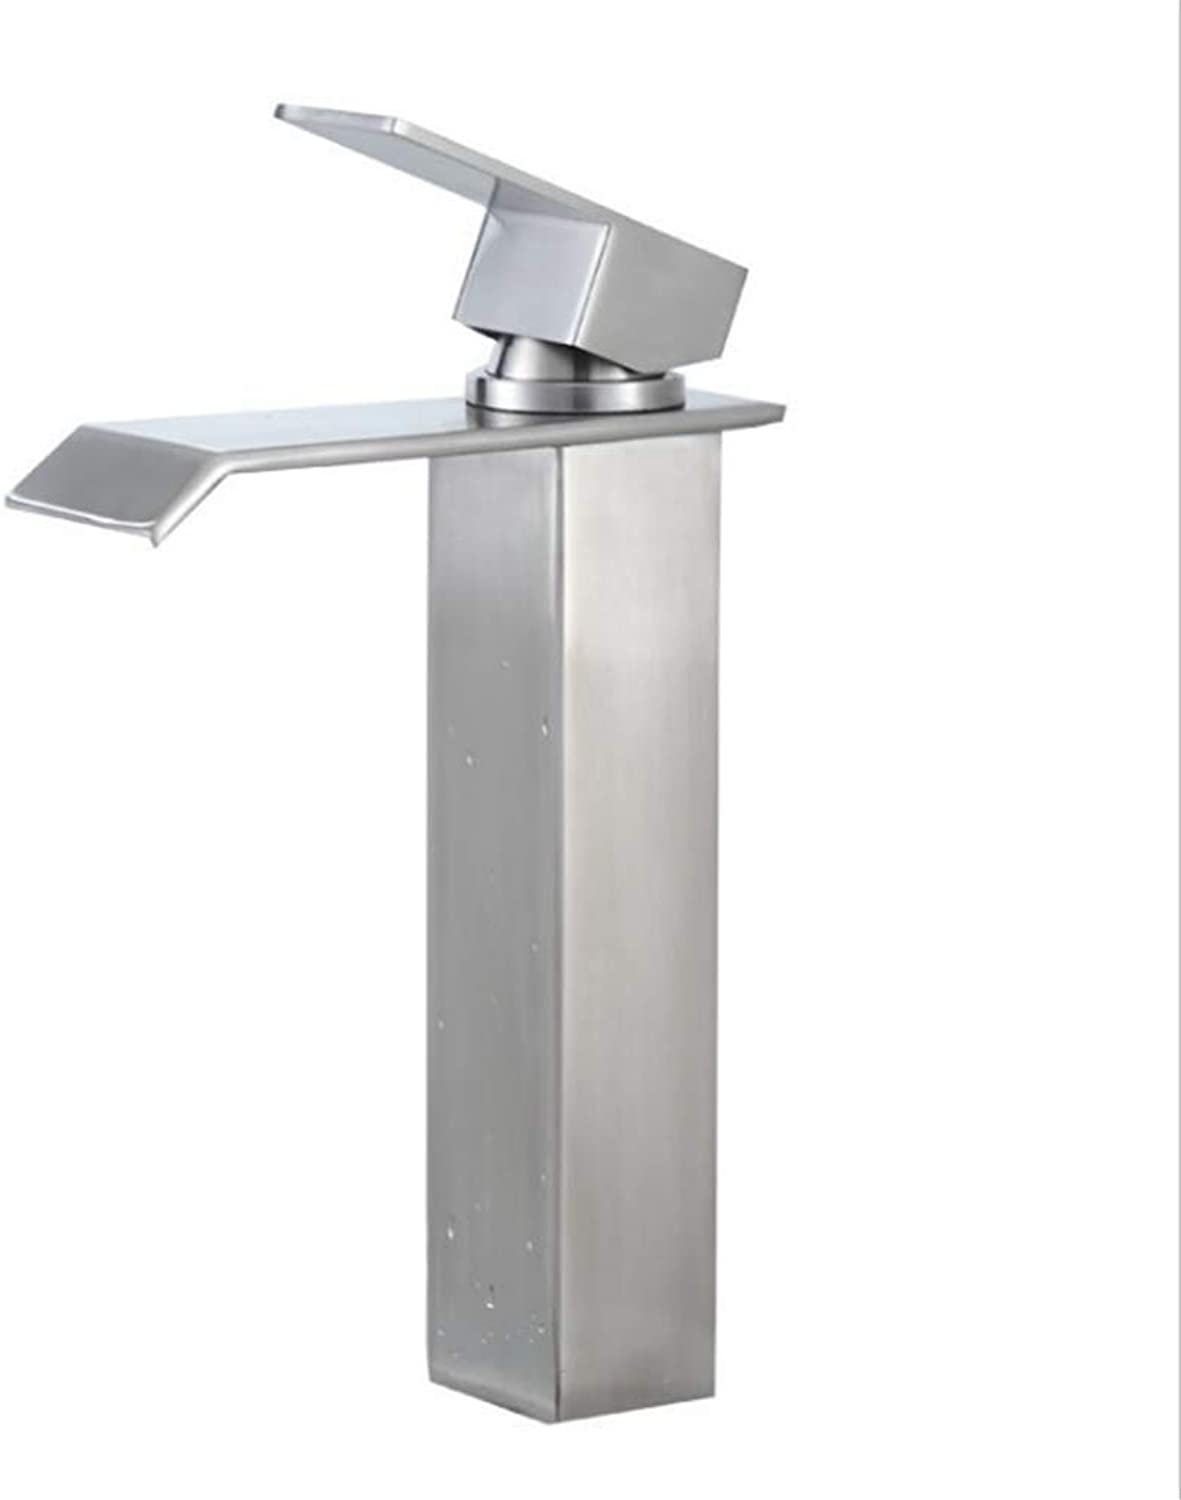 Counter Drinking Designer Archbathroom Stainless Steel Terrace Basin Art Basin Faucet Plus High Waterfall Running Water